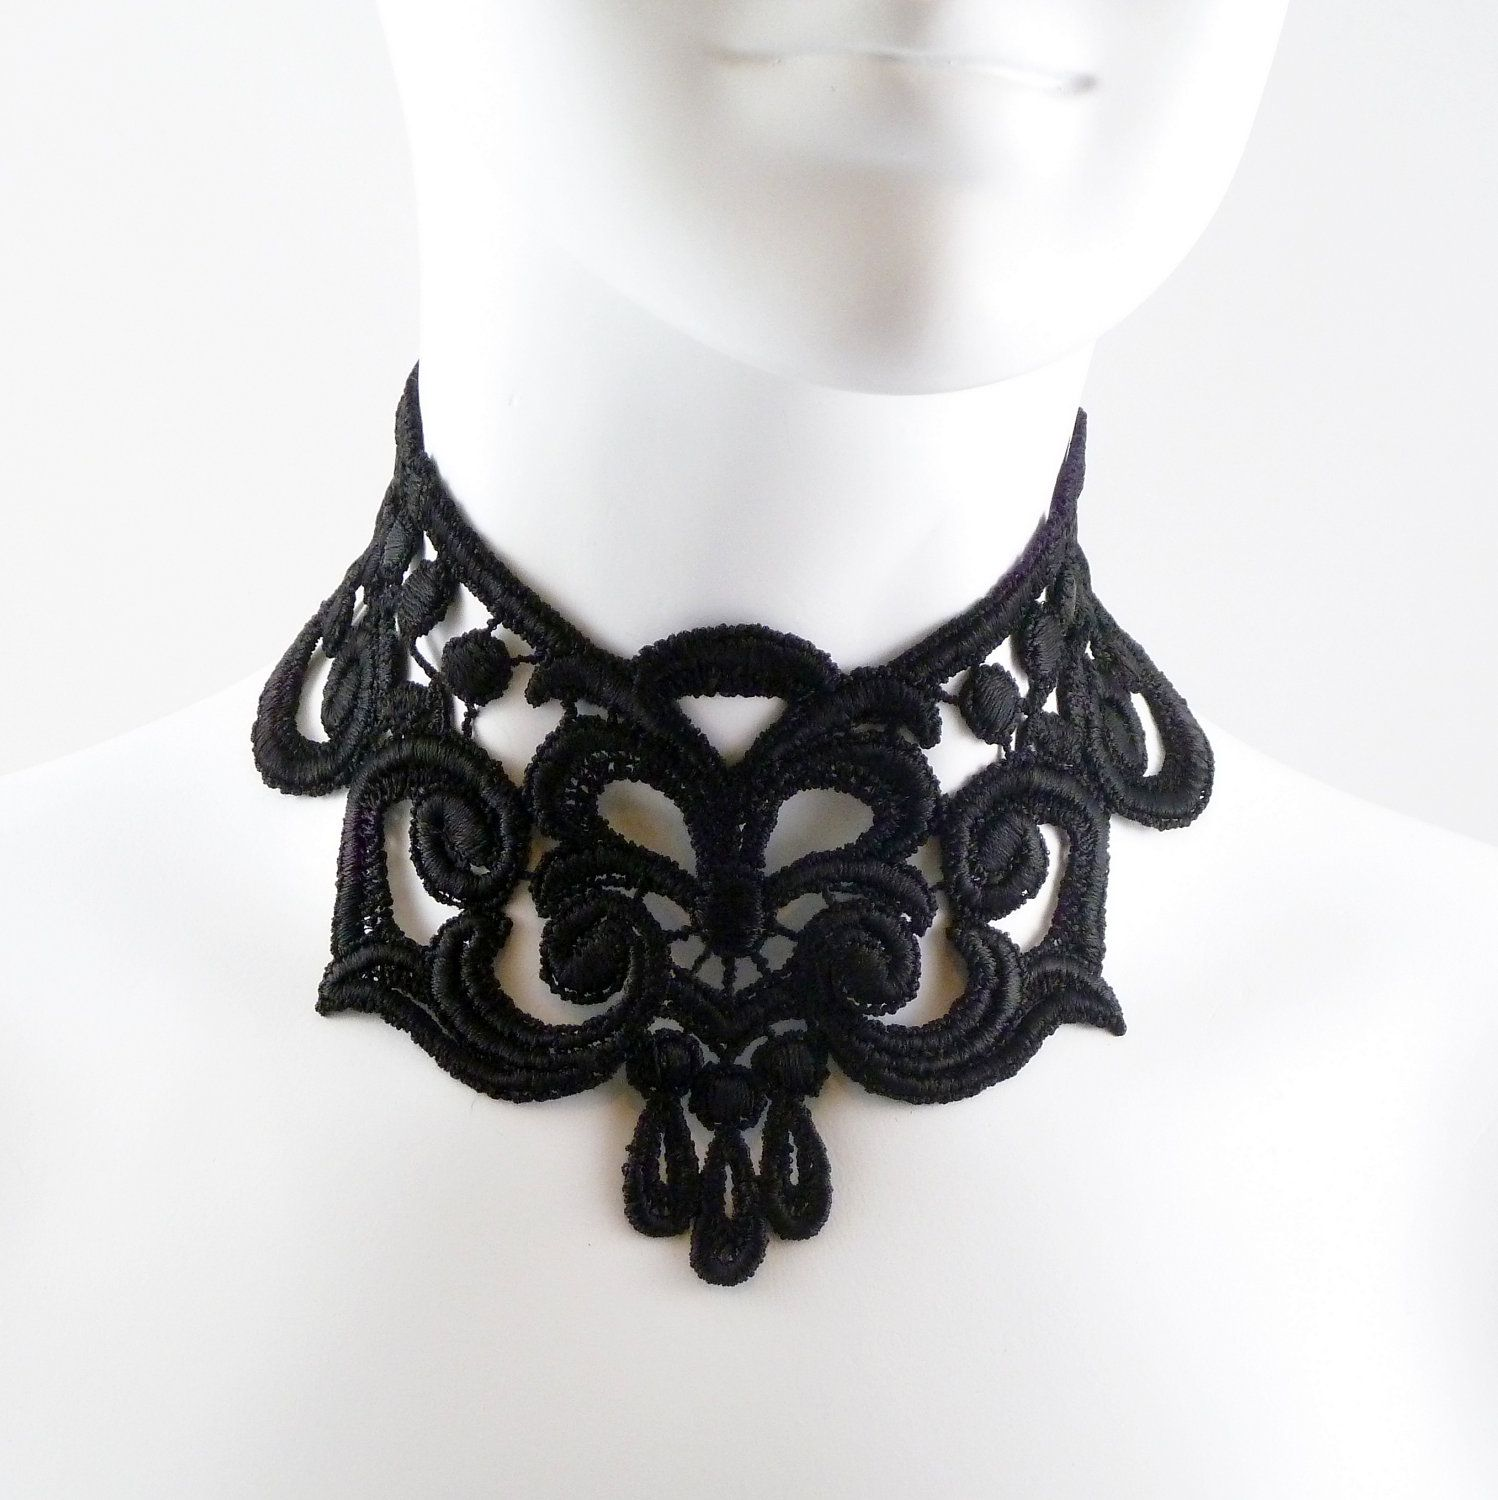 Intense Gothic Black Lace Choker Necklace Full Neck Large Chocker in Victorian Fashion Style - Goth Vampire Costume Fabric Jewelry Dark. $29.00 USD, via Etsy.